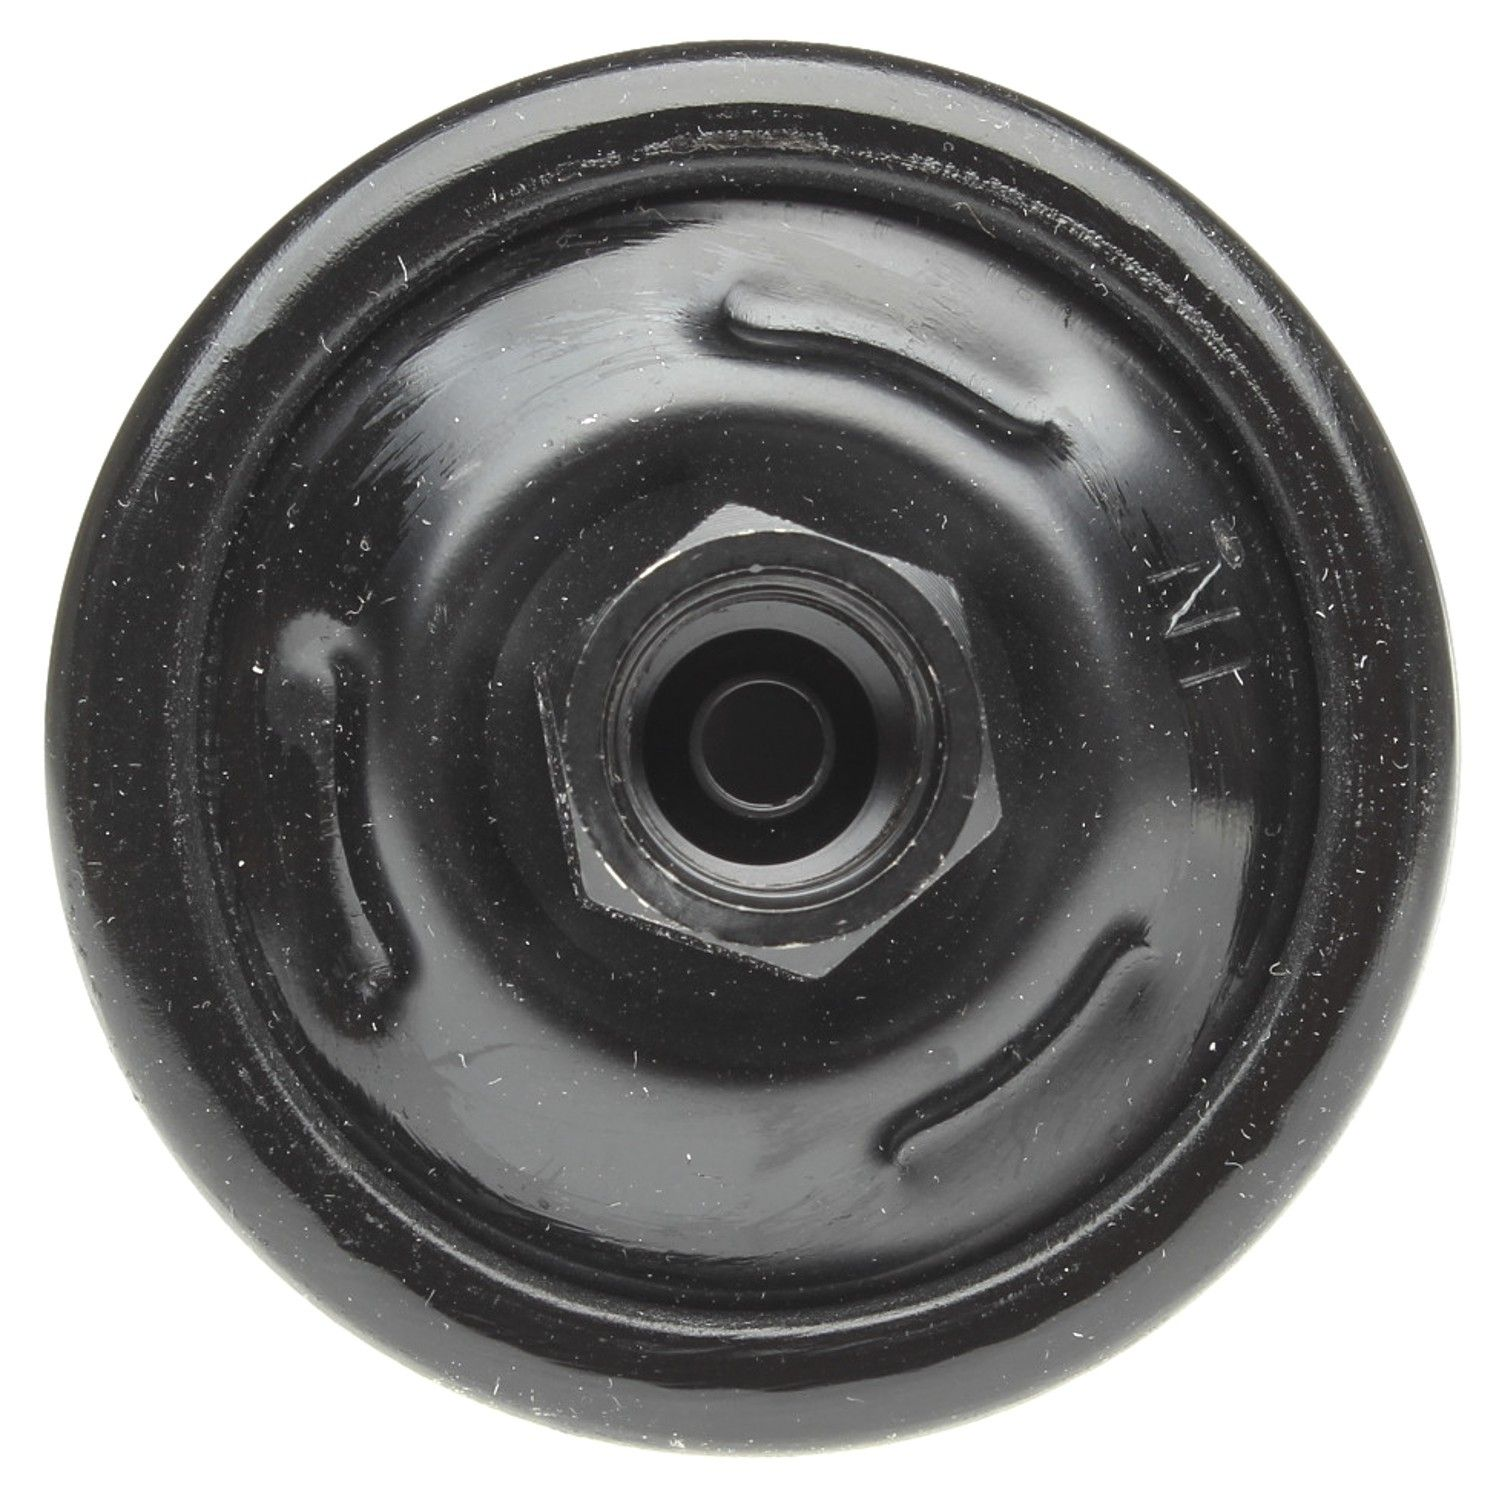 1997 Mitsubishi Mirage Fuel Filter - In-Line 4 Cyl 1.8L (Mahle KL 509)  Filter Type In-line Fuel Filter .